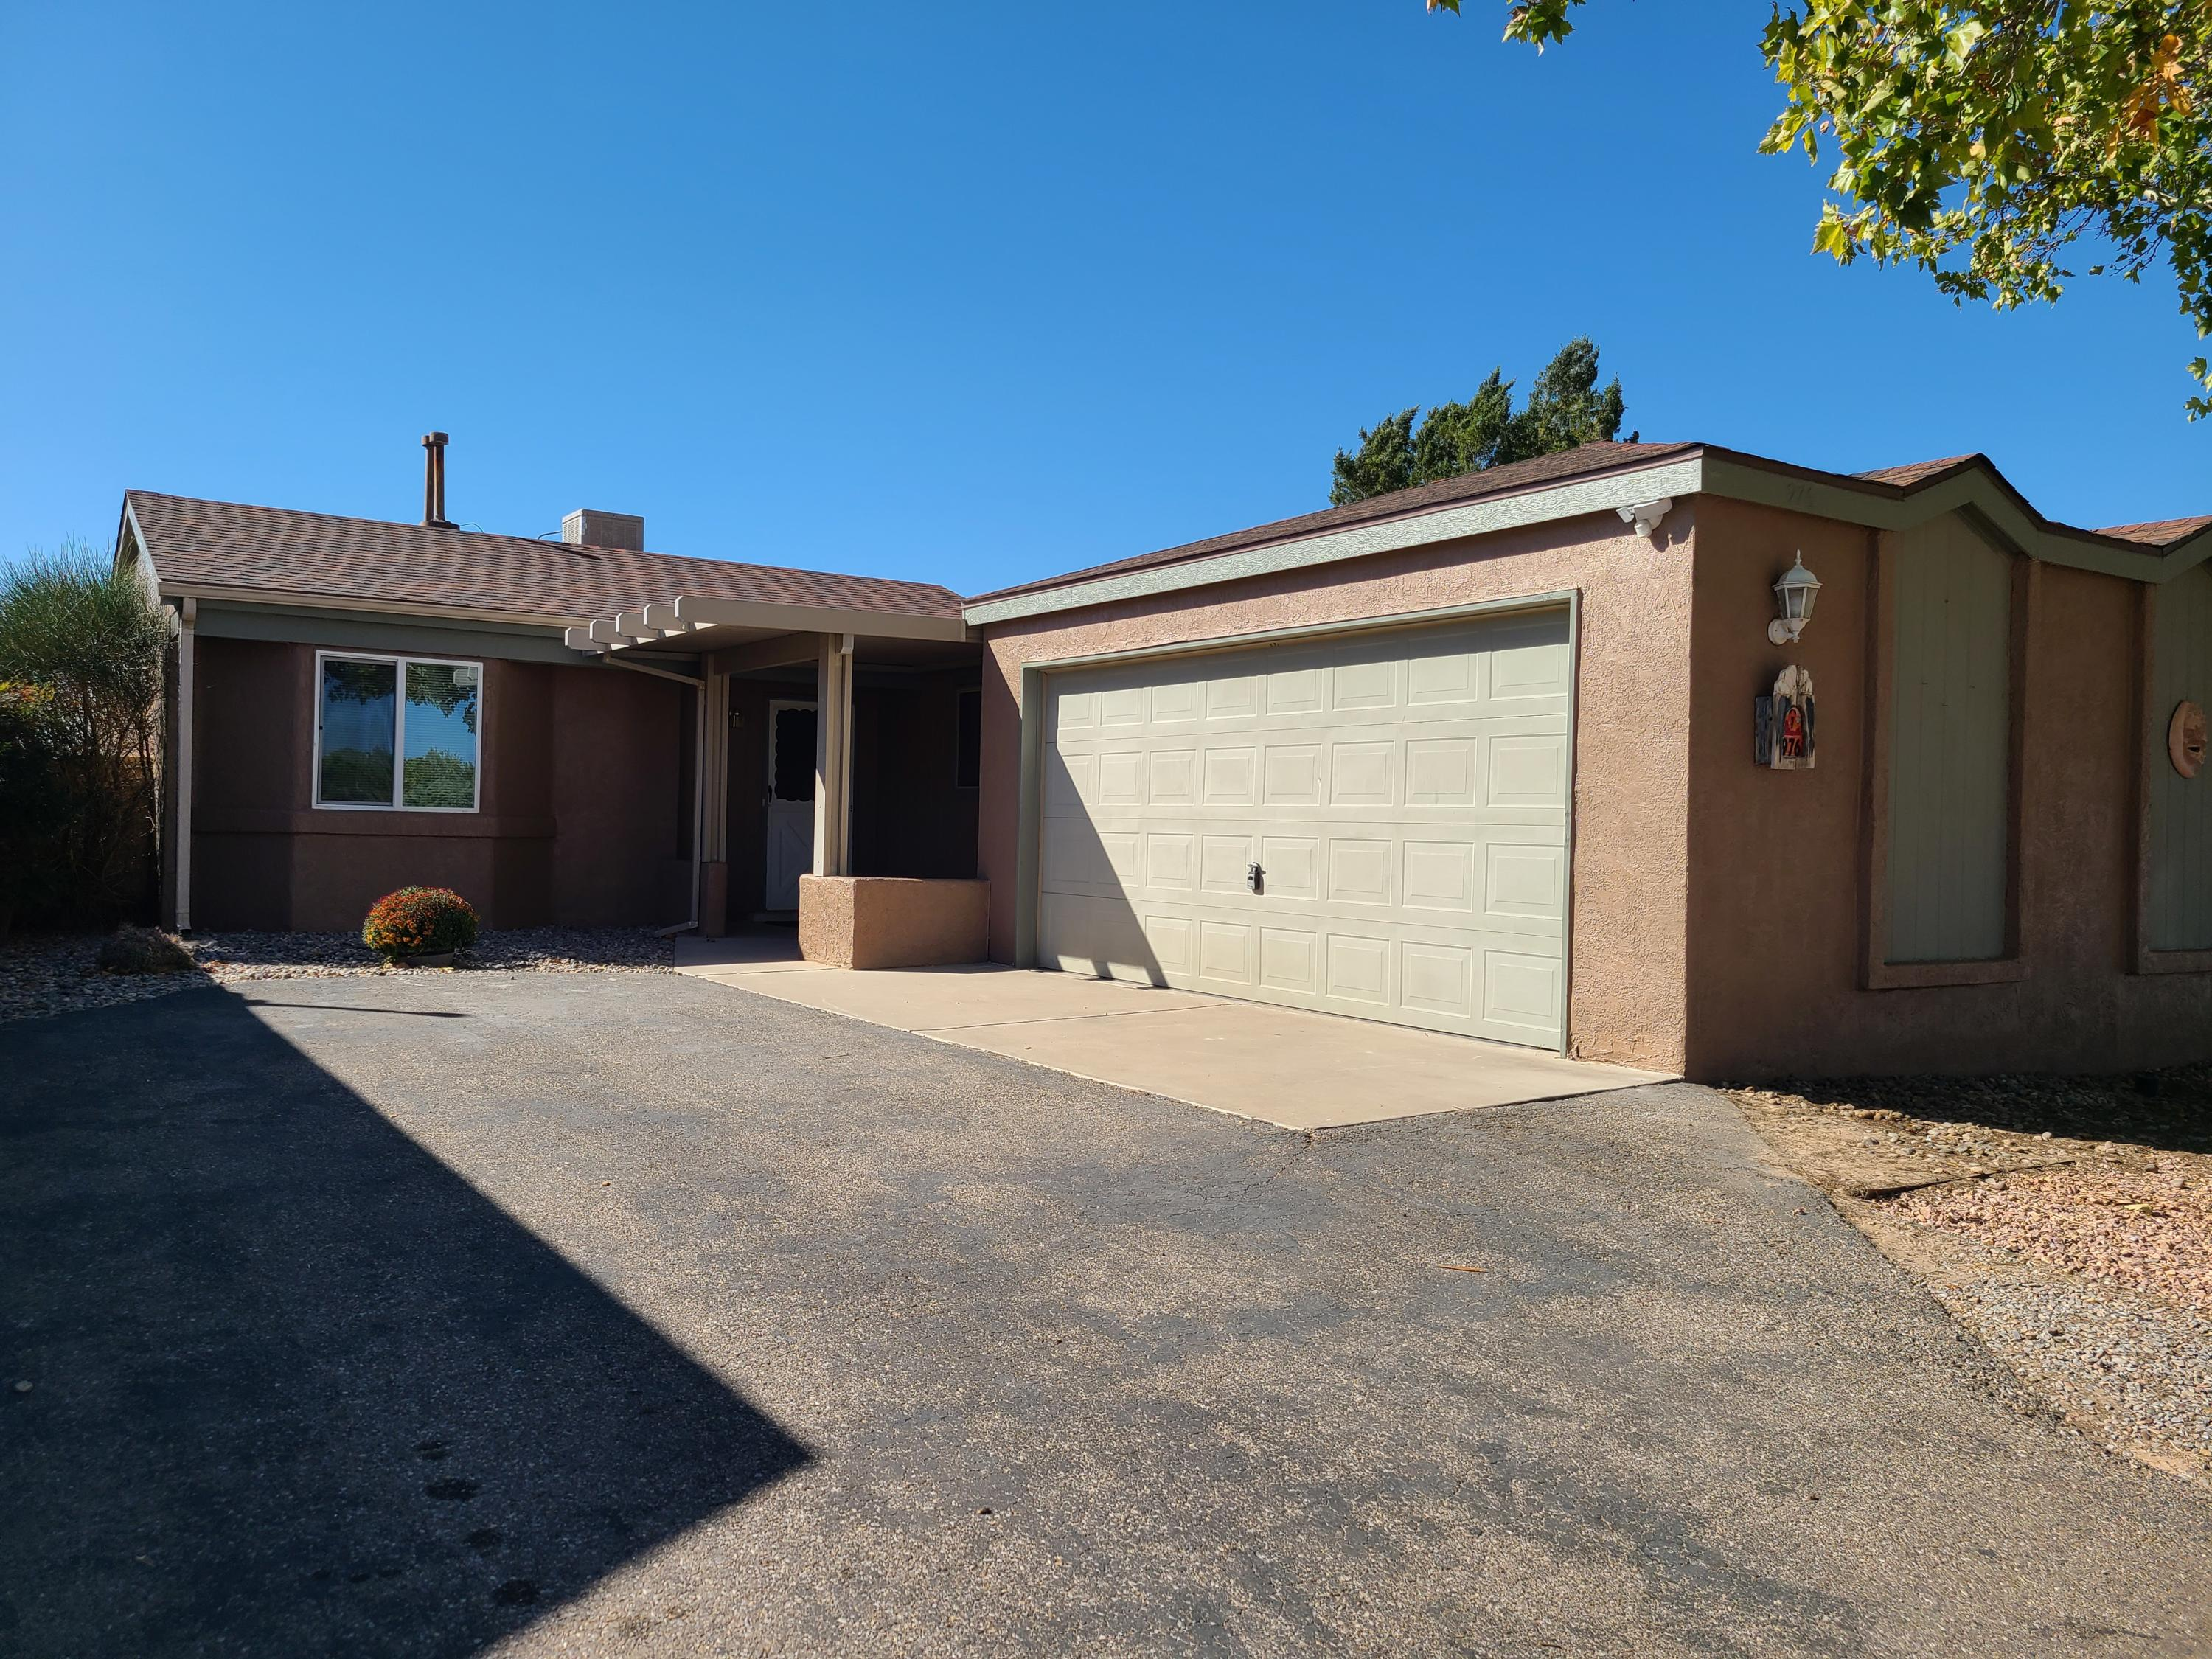 Updated 2 bedroom home in Rio Rancho! Home features new flooring through out as well as paint and updated kitchen. Kitchen has new microwave/range and new oven/stove with marble tile counter tops. Large back yard with covered patio and xeriscape front and back yard. The interior of the home looks brand new!